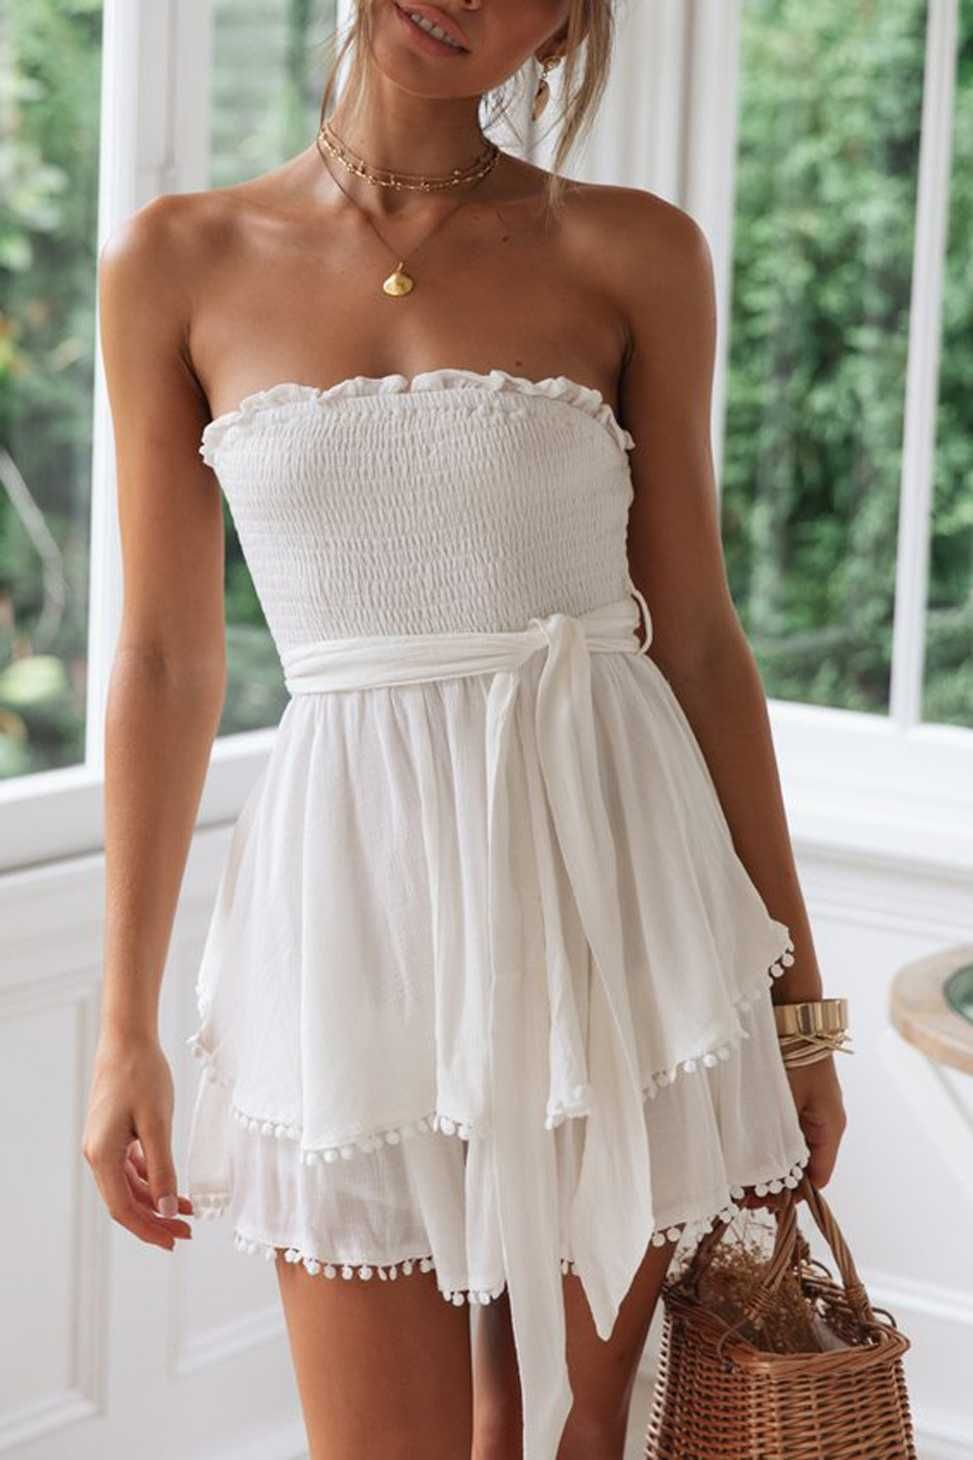 Tie Waist Smocked Pompom Trimed Layered Strapless Romper Shorts Bandeau Playsuits - White dress summer, Trendy dresses summer, Womens dresses, Casual dress, Casual summer dresses, Fashion -  Blue Size Details Size S   Bust 64100 cm, Hip 153 cm, Length 63 cm; Size M  Bust 68104 cm, Hip 157 cm, Length 64 cm; Size L    Bust 72108 cm, Hip 162 cm, Length 65 cm; Size XL  Bust 76112 cm, Hip 165 cm, Length 66 cm; DesignBandeau Rompers, Pom pom Trimed, Tie Front, Waist Tie, Short Playsuits, Layered, High Waisted, Slimming  Weight approx 0 22 0 kg Machine Wash Cold